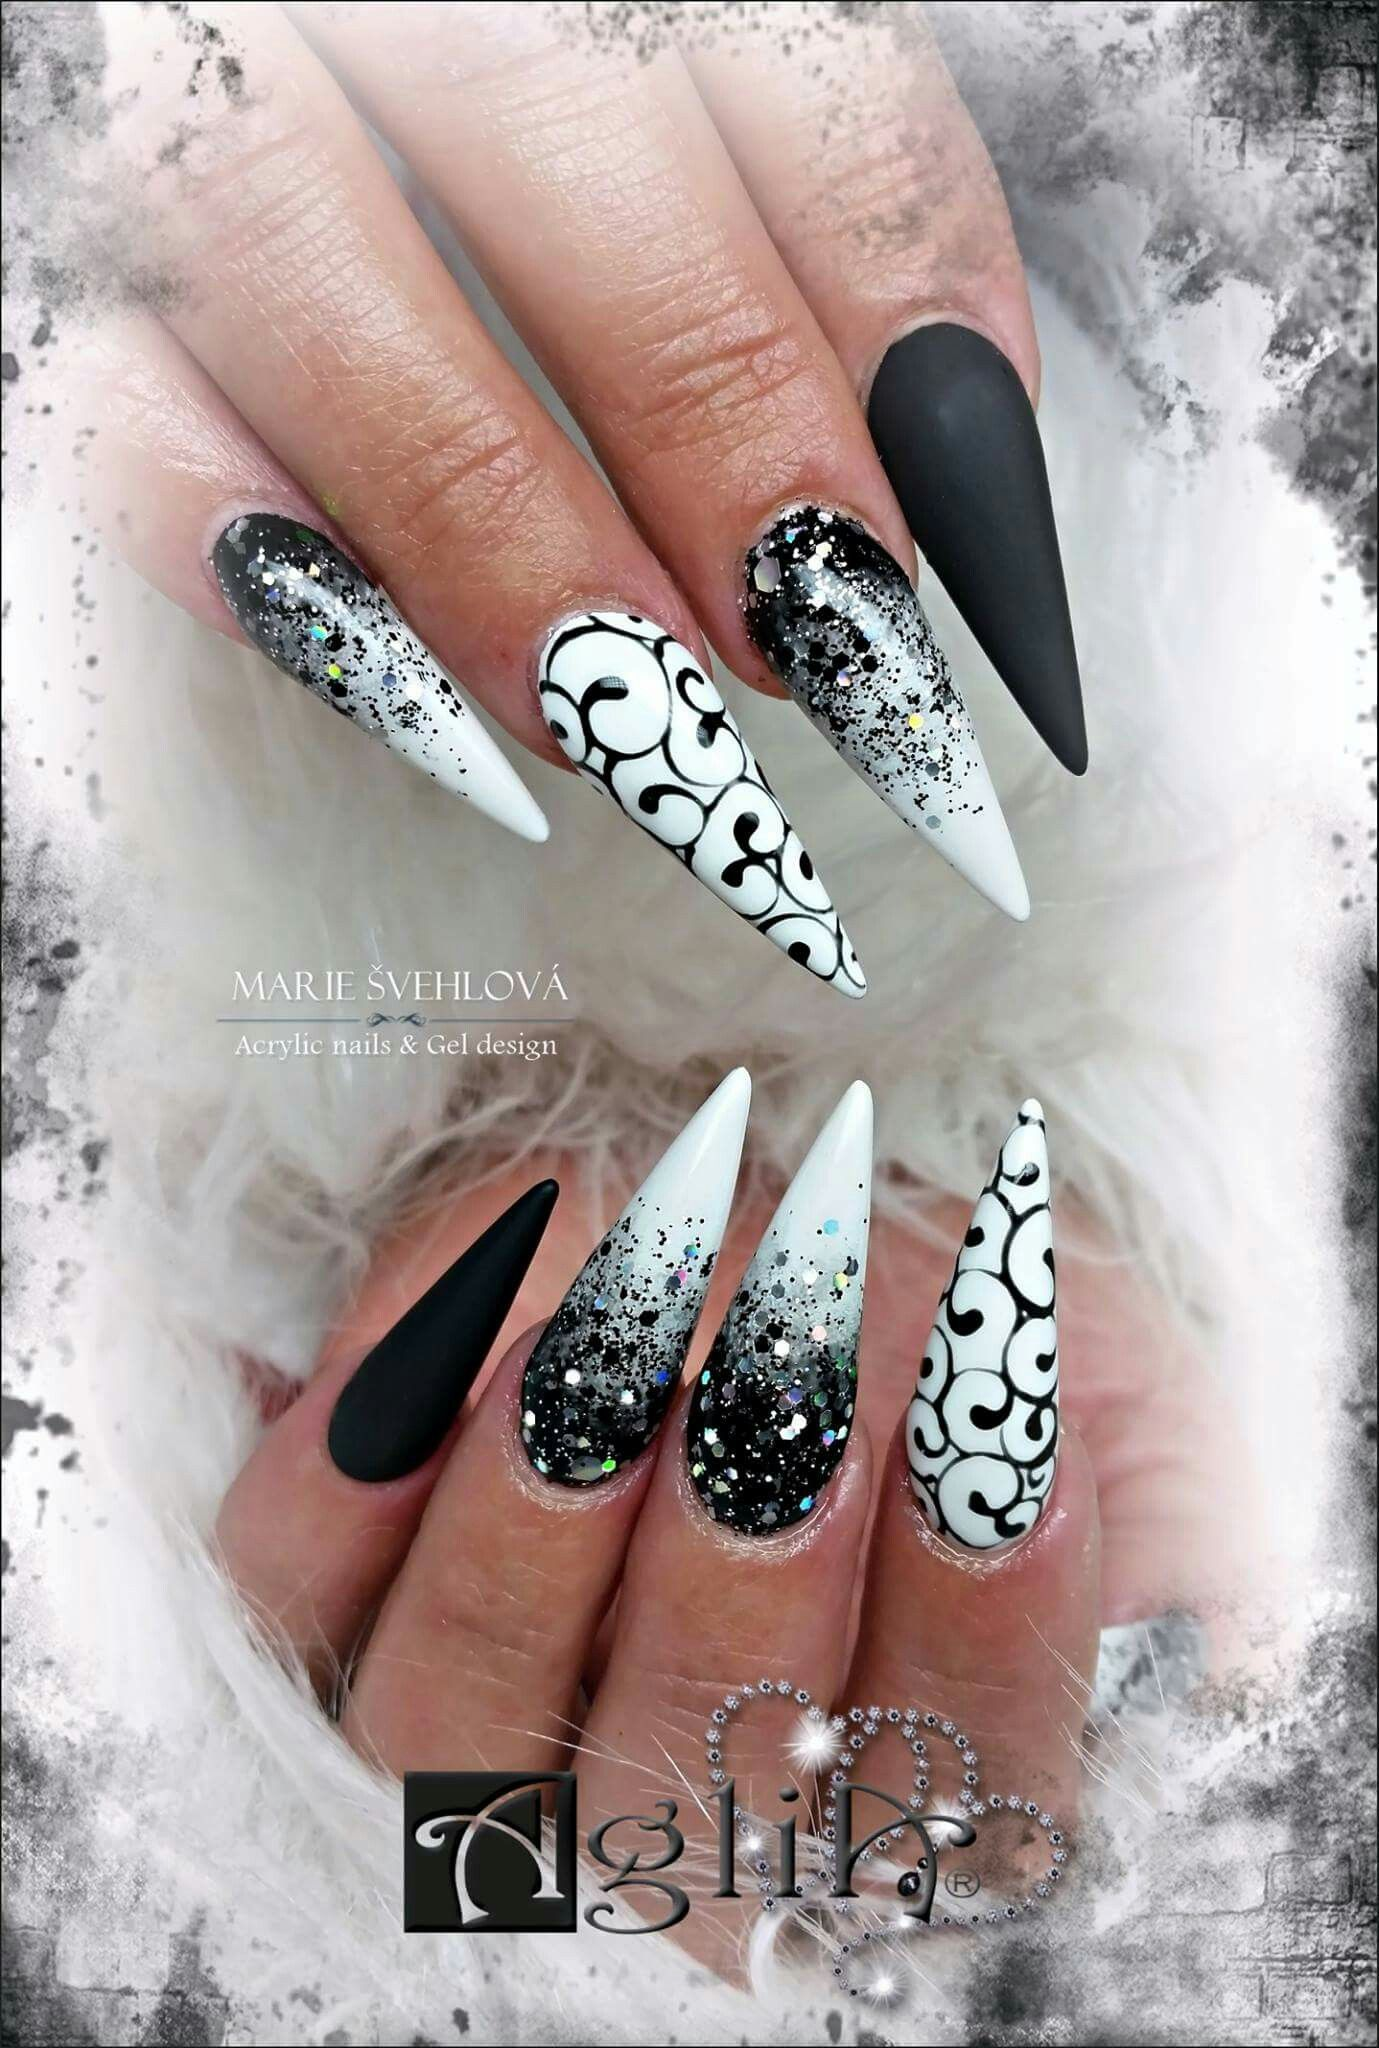 30 Creative Designs For Black Acrylic Nails That Will Catch Your